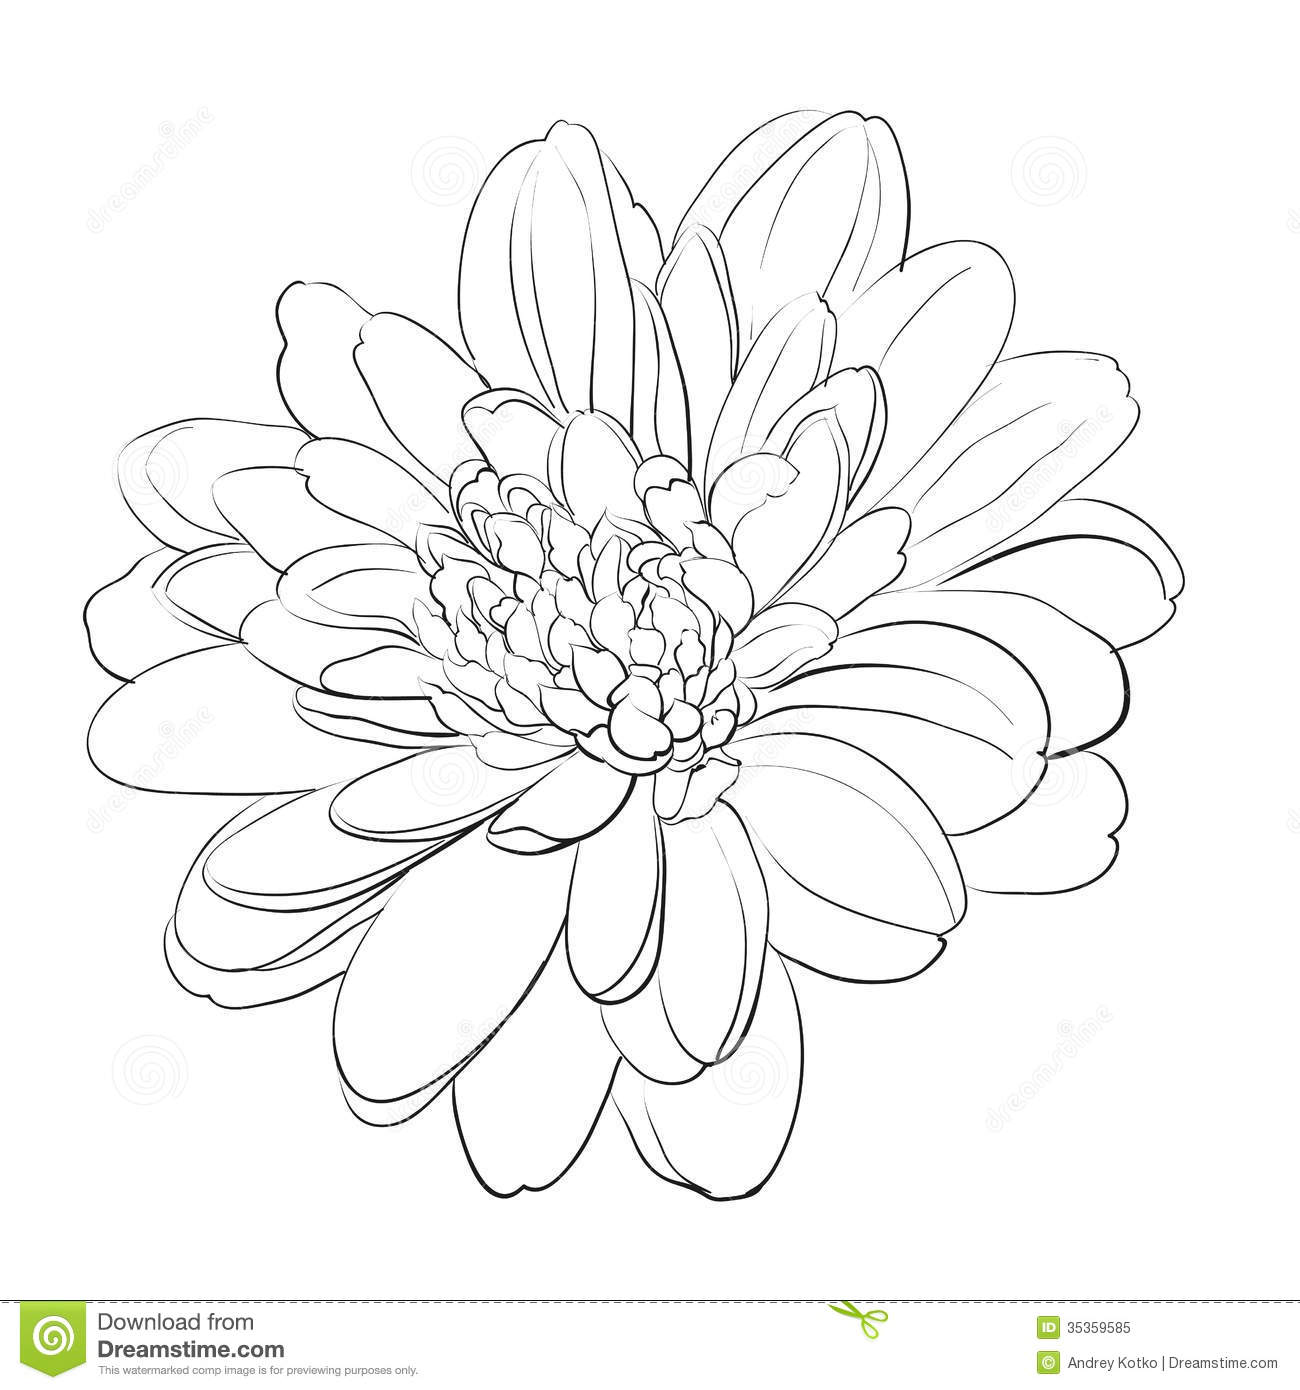 Chinese Flower Line Drawing : Chrysanthemum flower on white background stock image